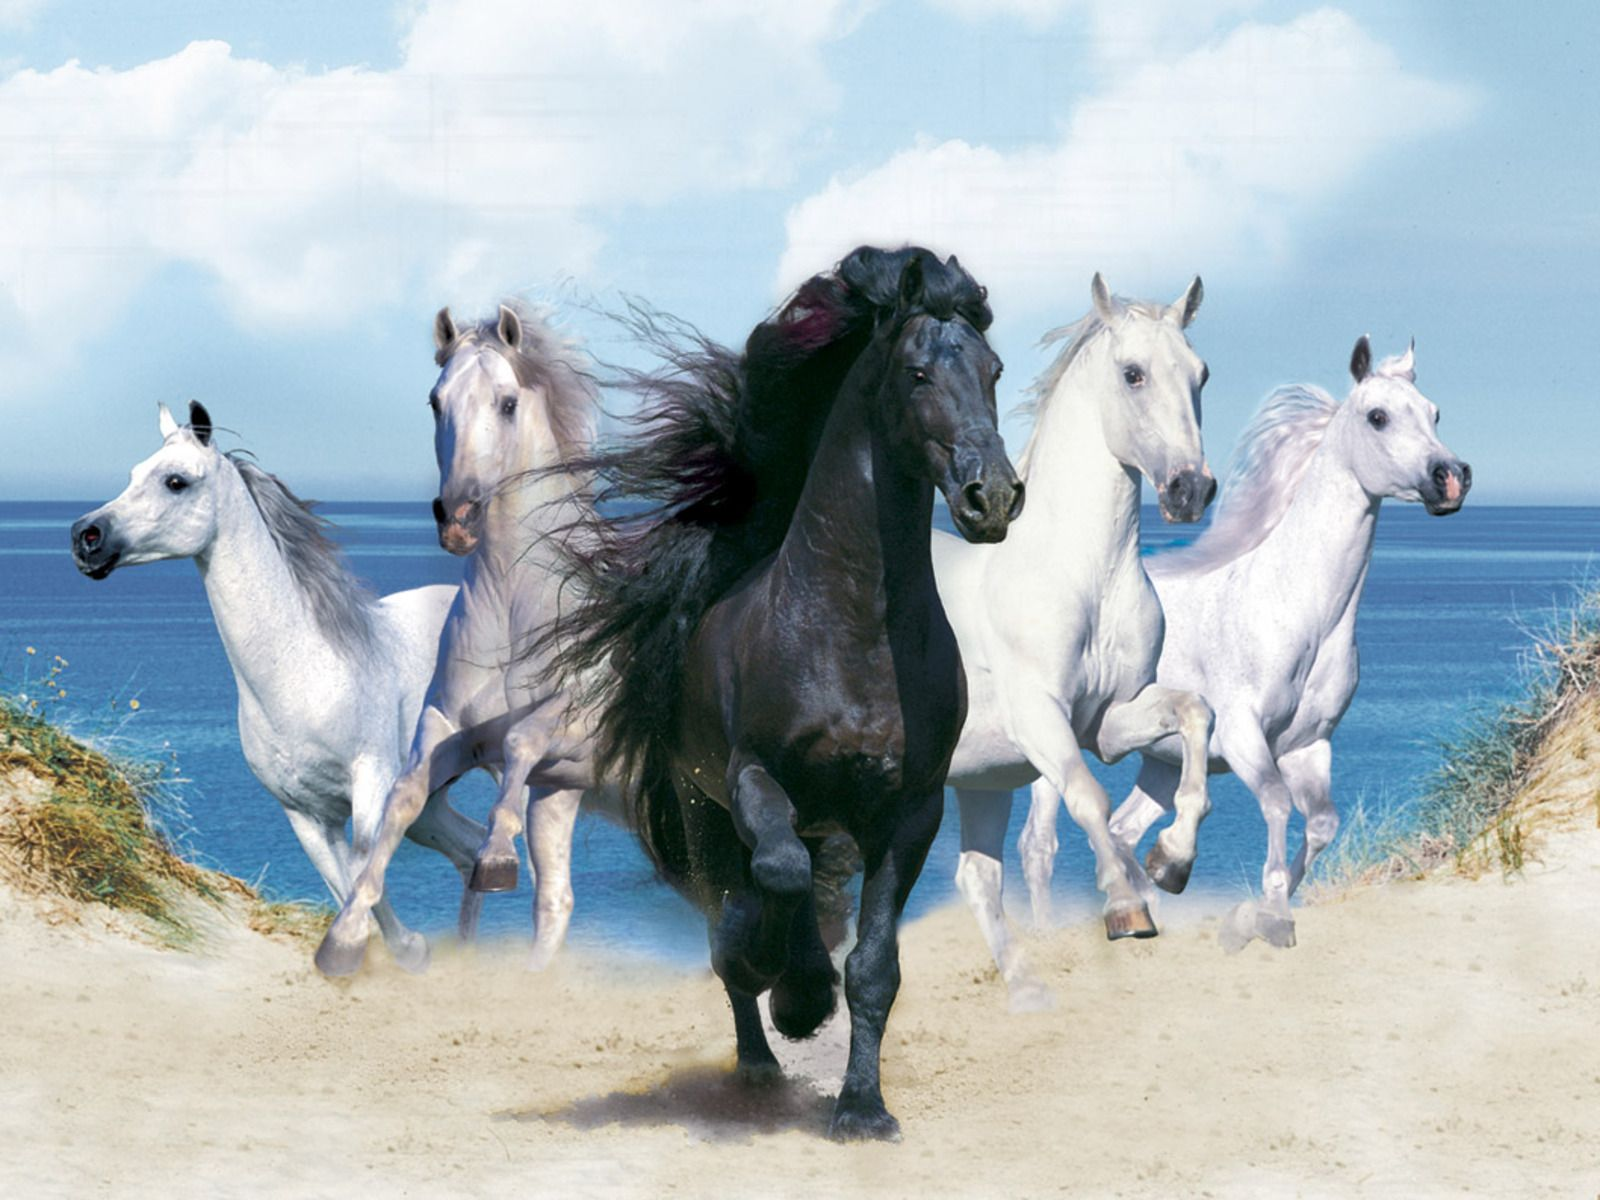 horses wallpaper and backgrounds | animals wallpapers fantasy